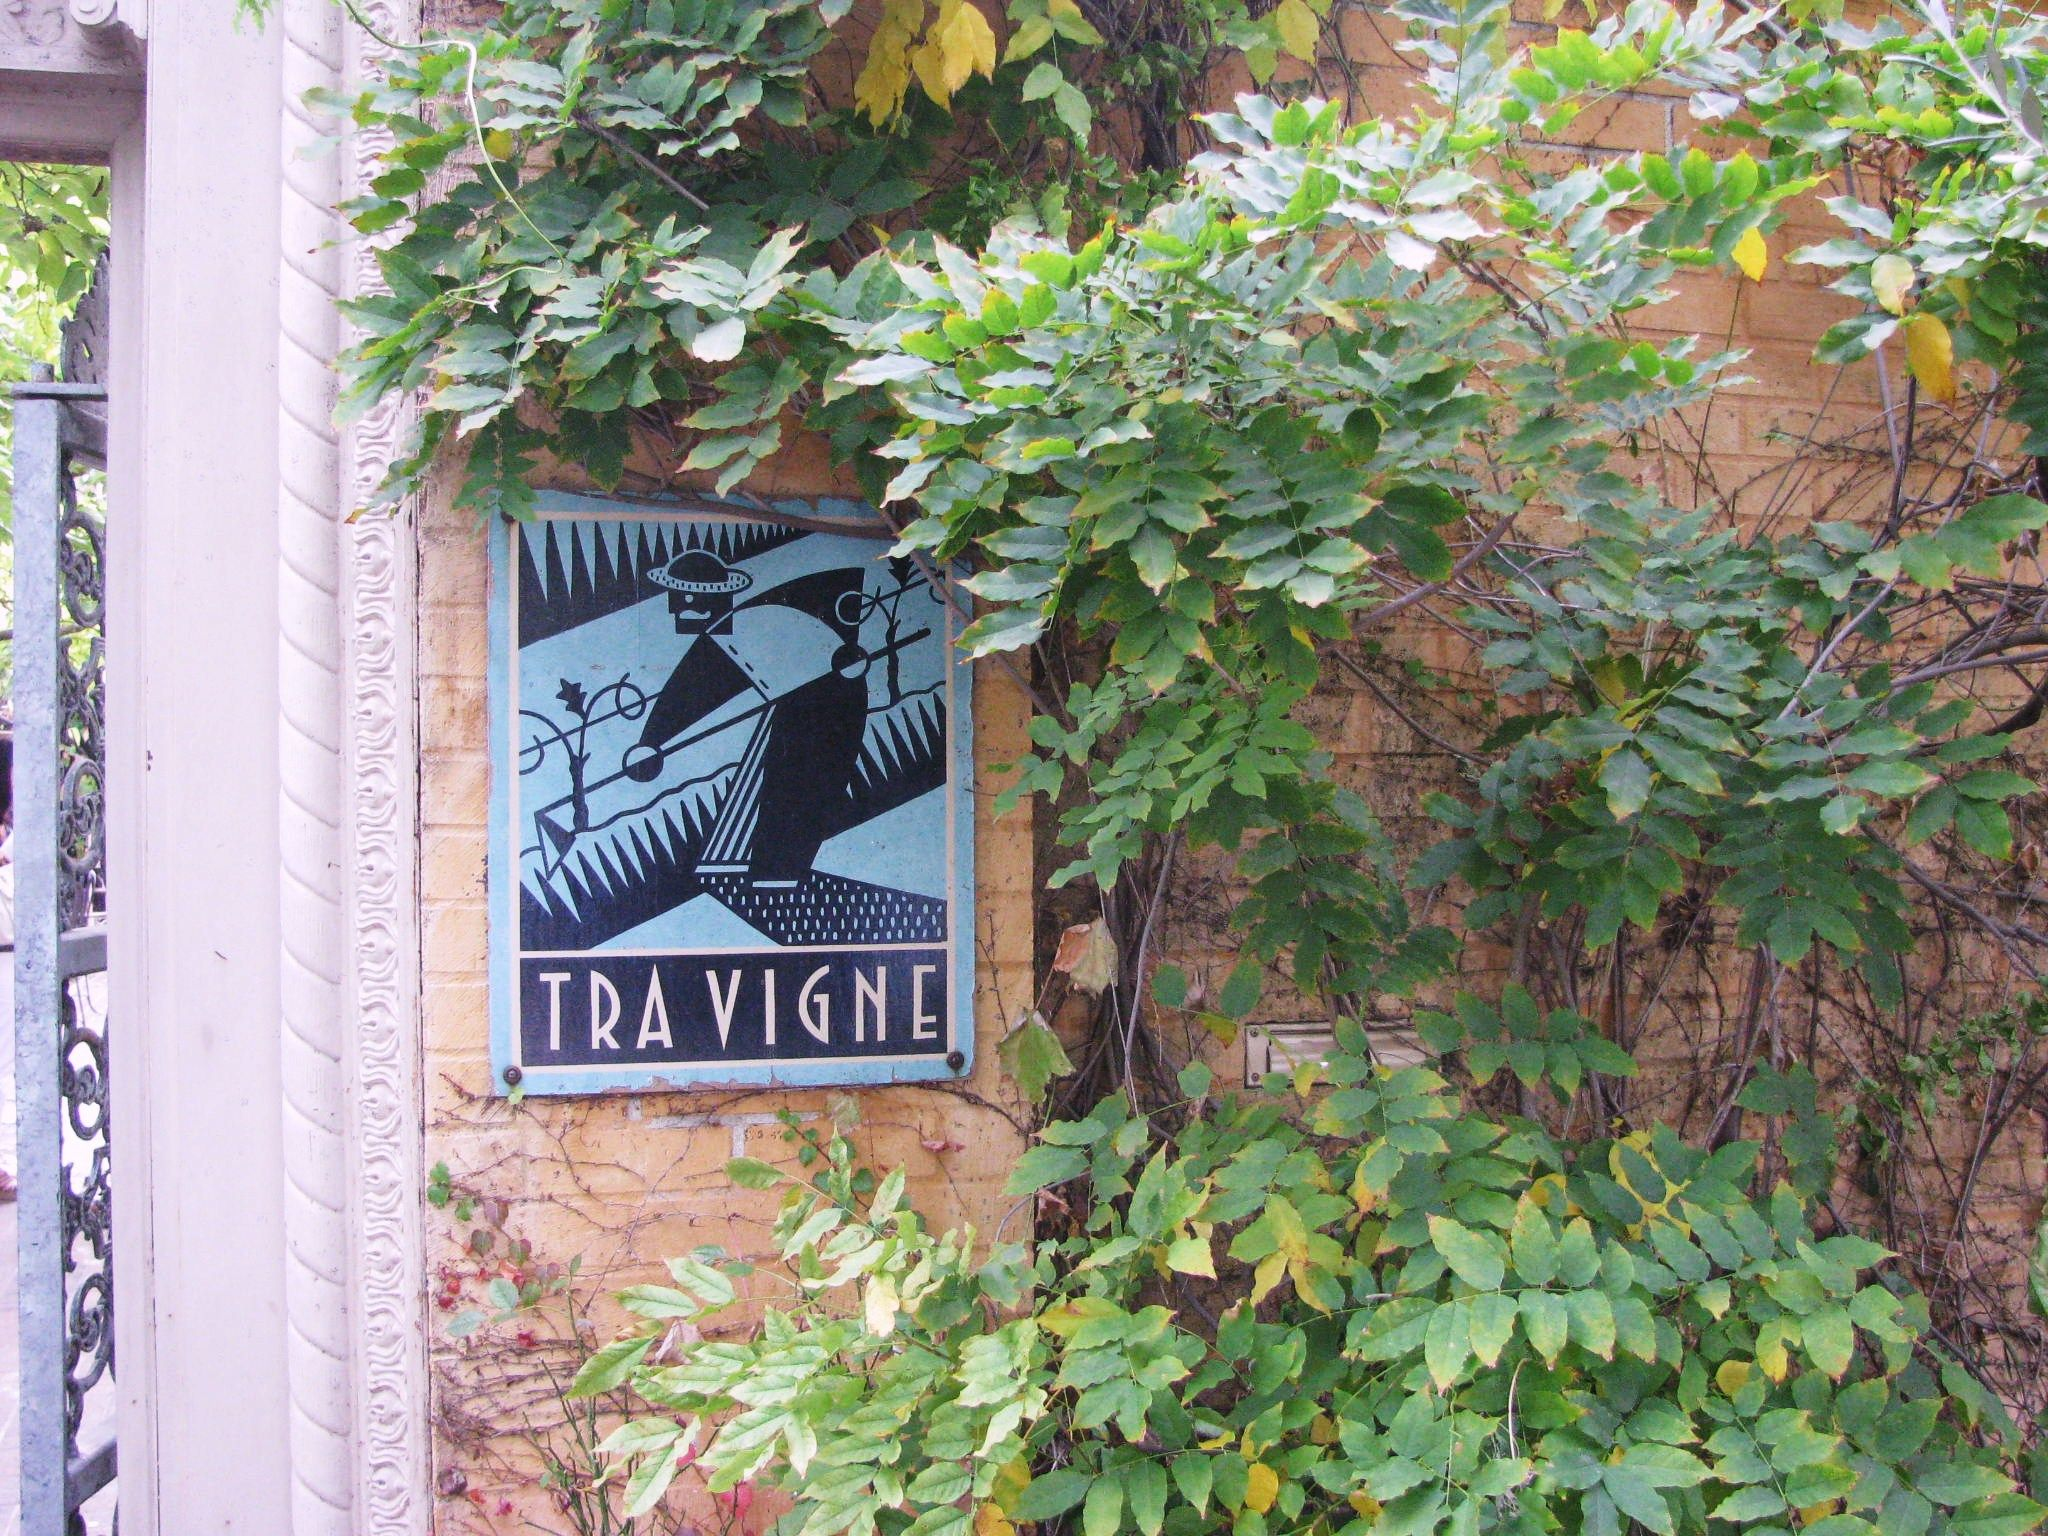 Tra Vigne - quintessential Napa wine country dining experience in St Helena, CA.  Dine in the tuscan courtyard - its delightful!